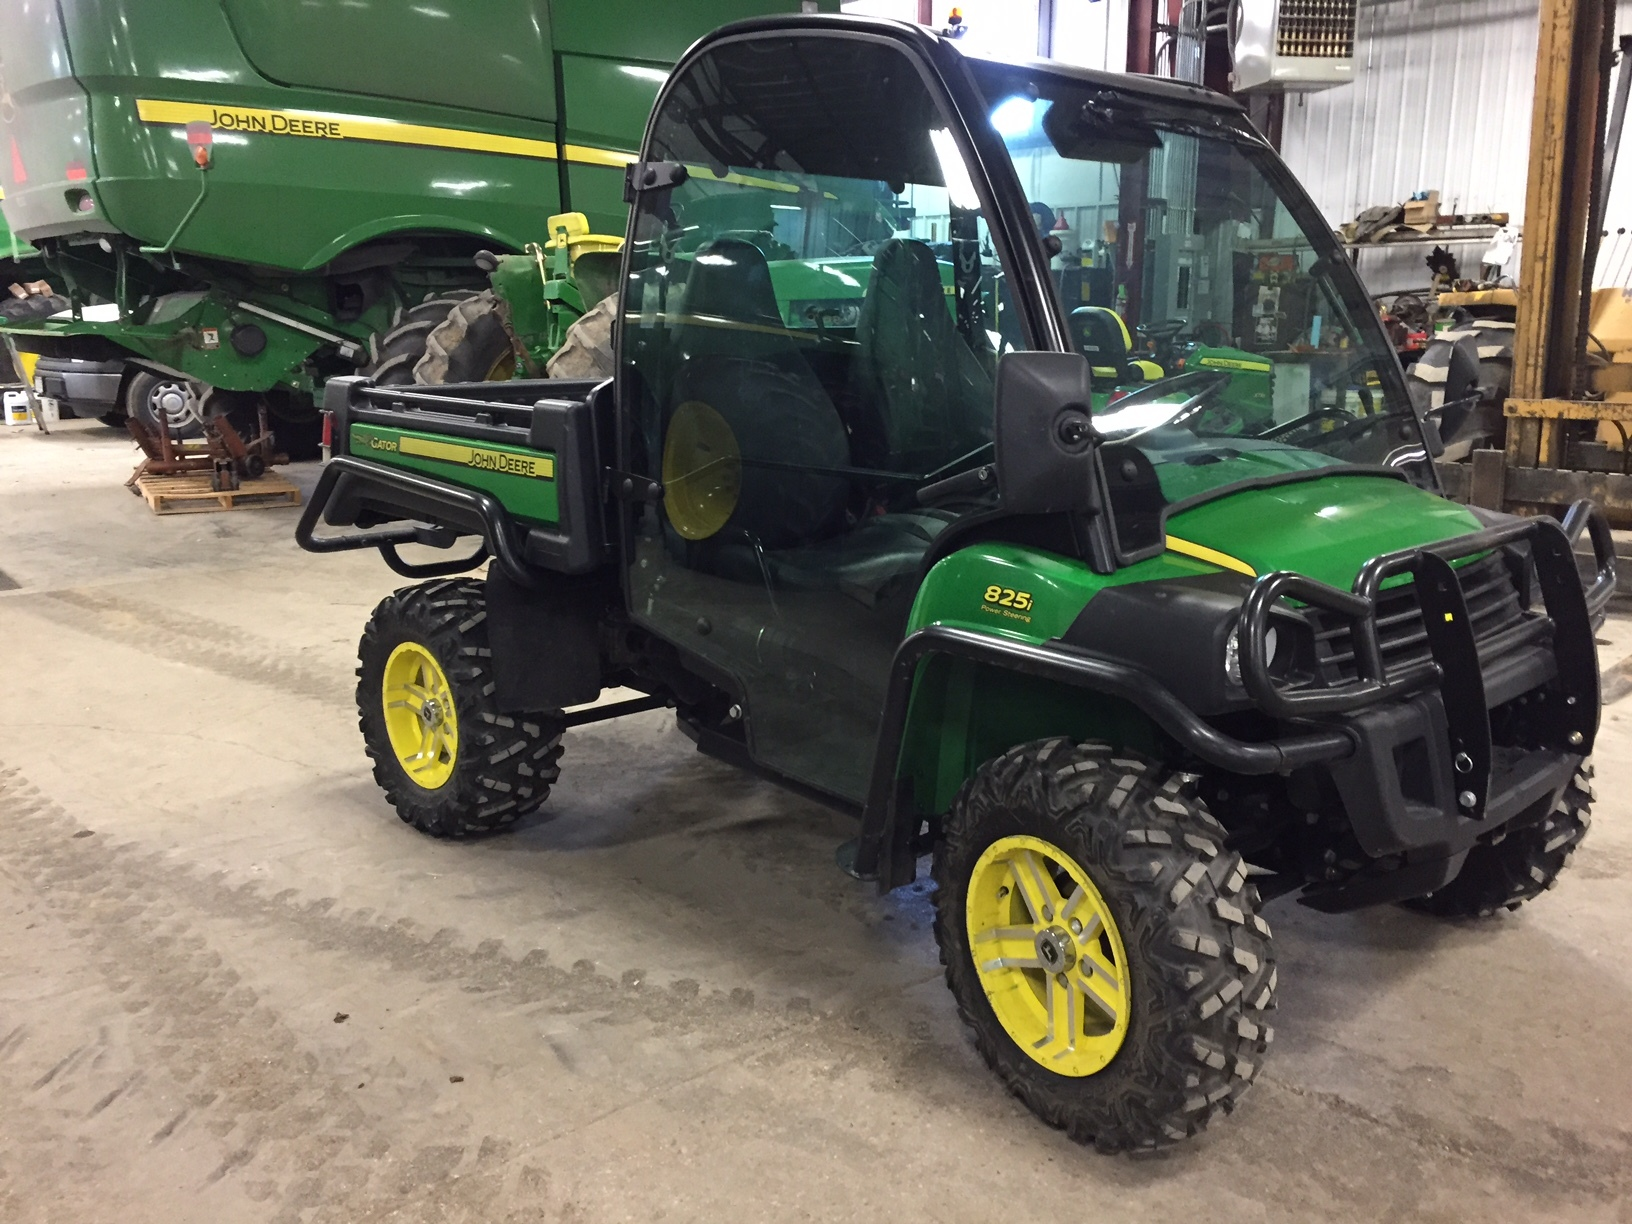 John Deere XUV 825i Power Steering ATVs & Gators for Sale | [59918]